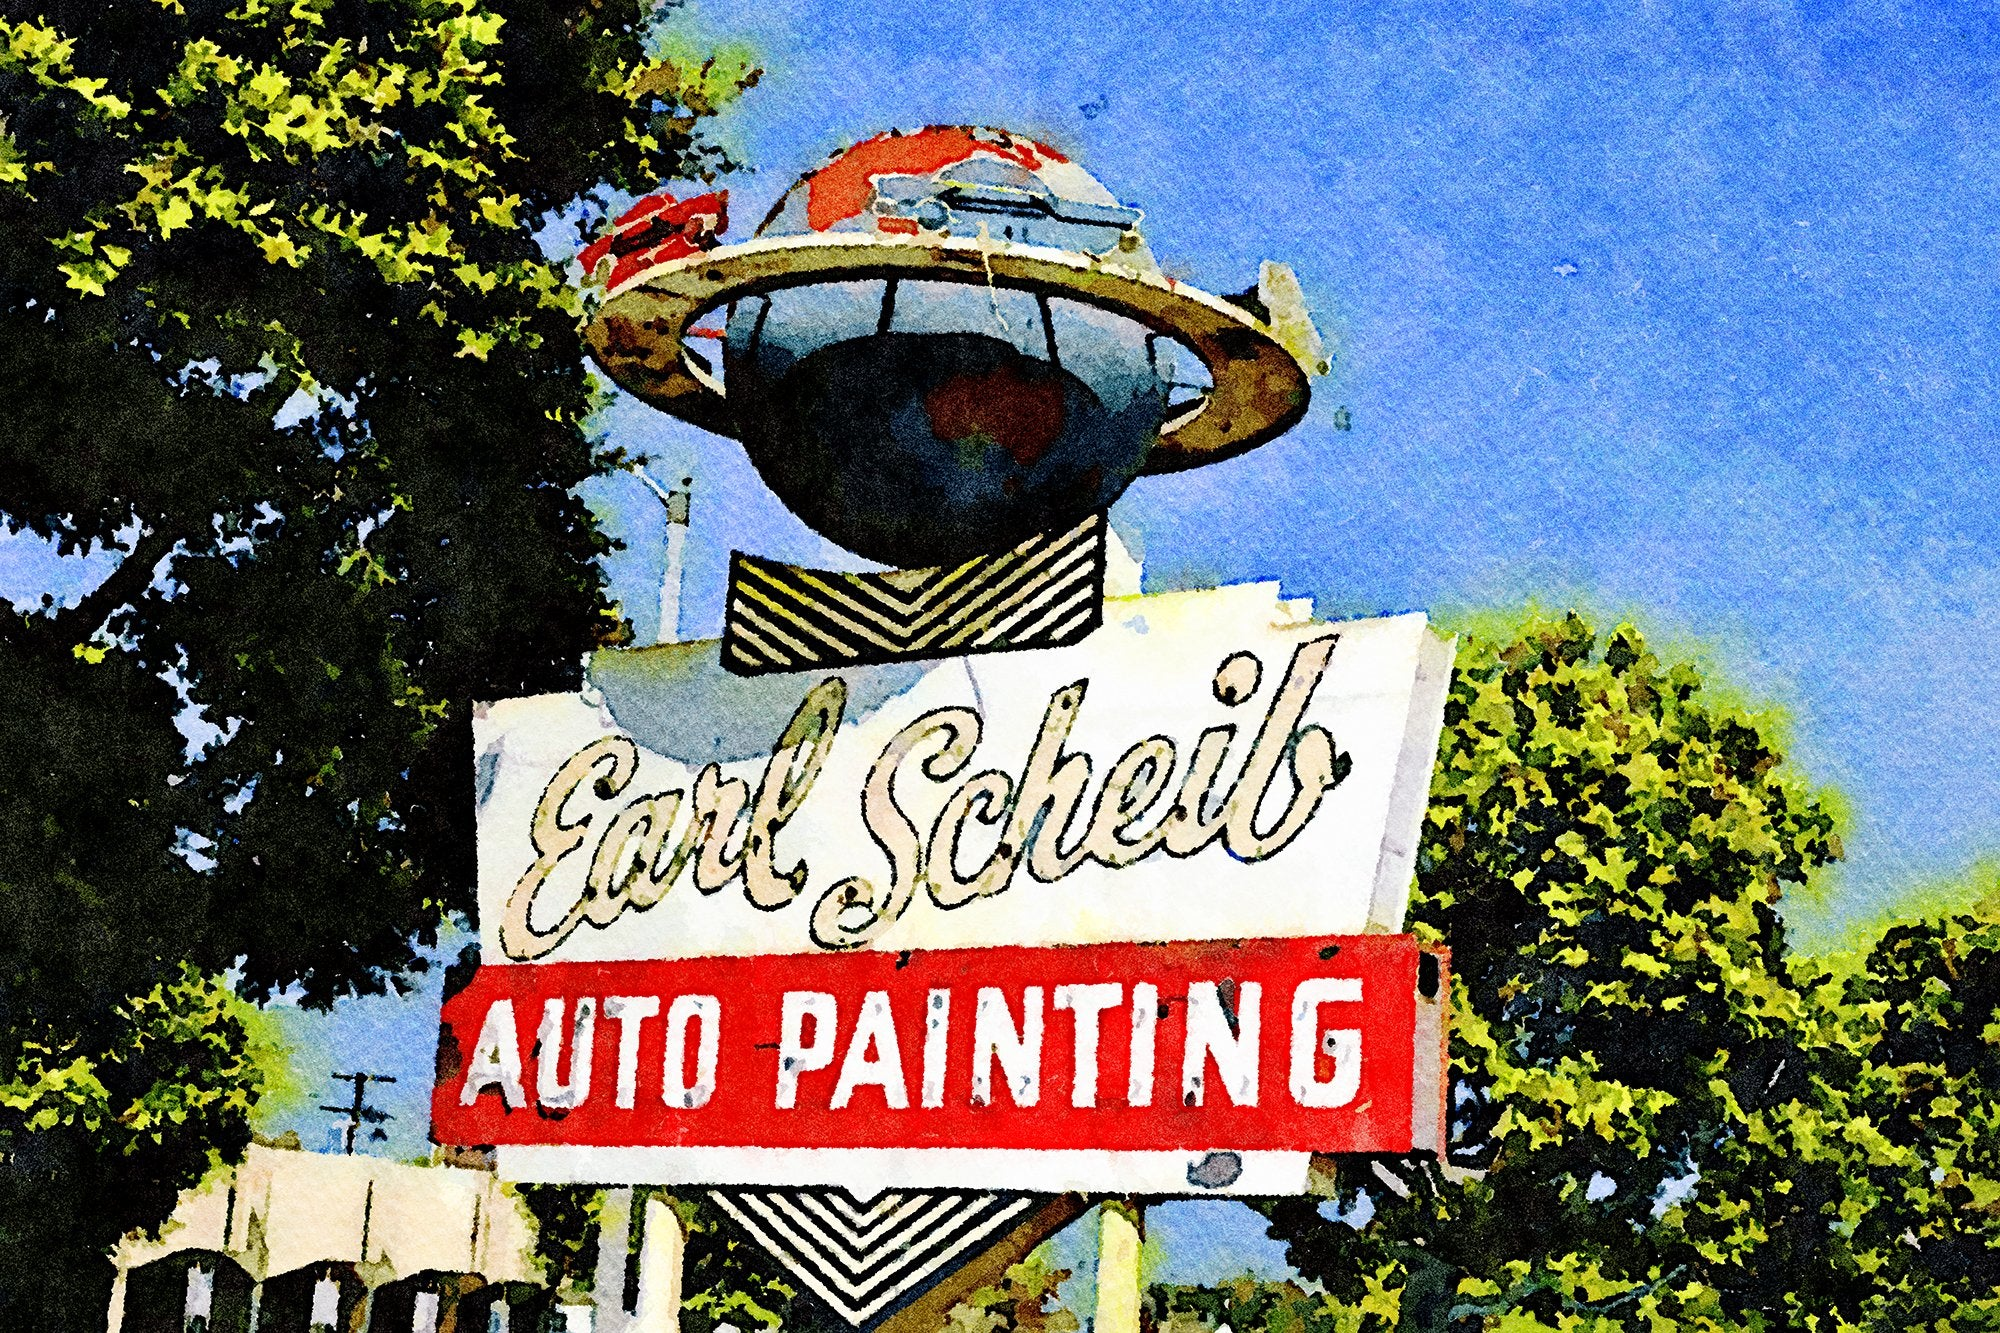 Earl Schieb Auto Painting Sign, Olympic Boulevard, Beverly Hills, California, Reworked, Series 1